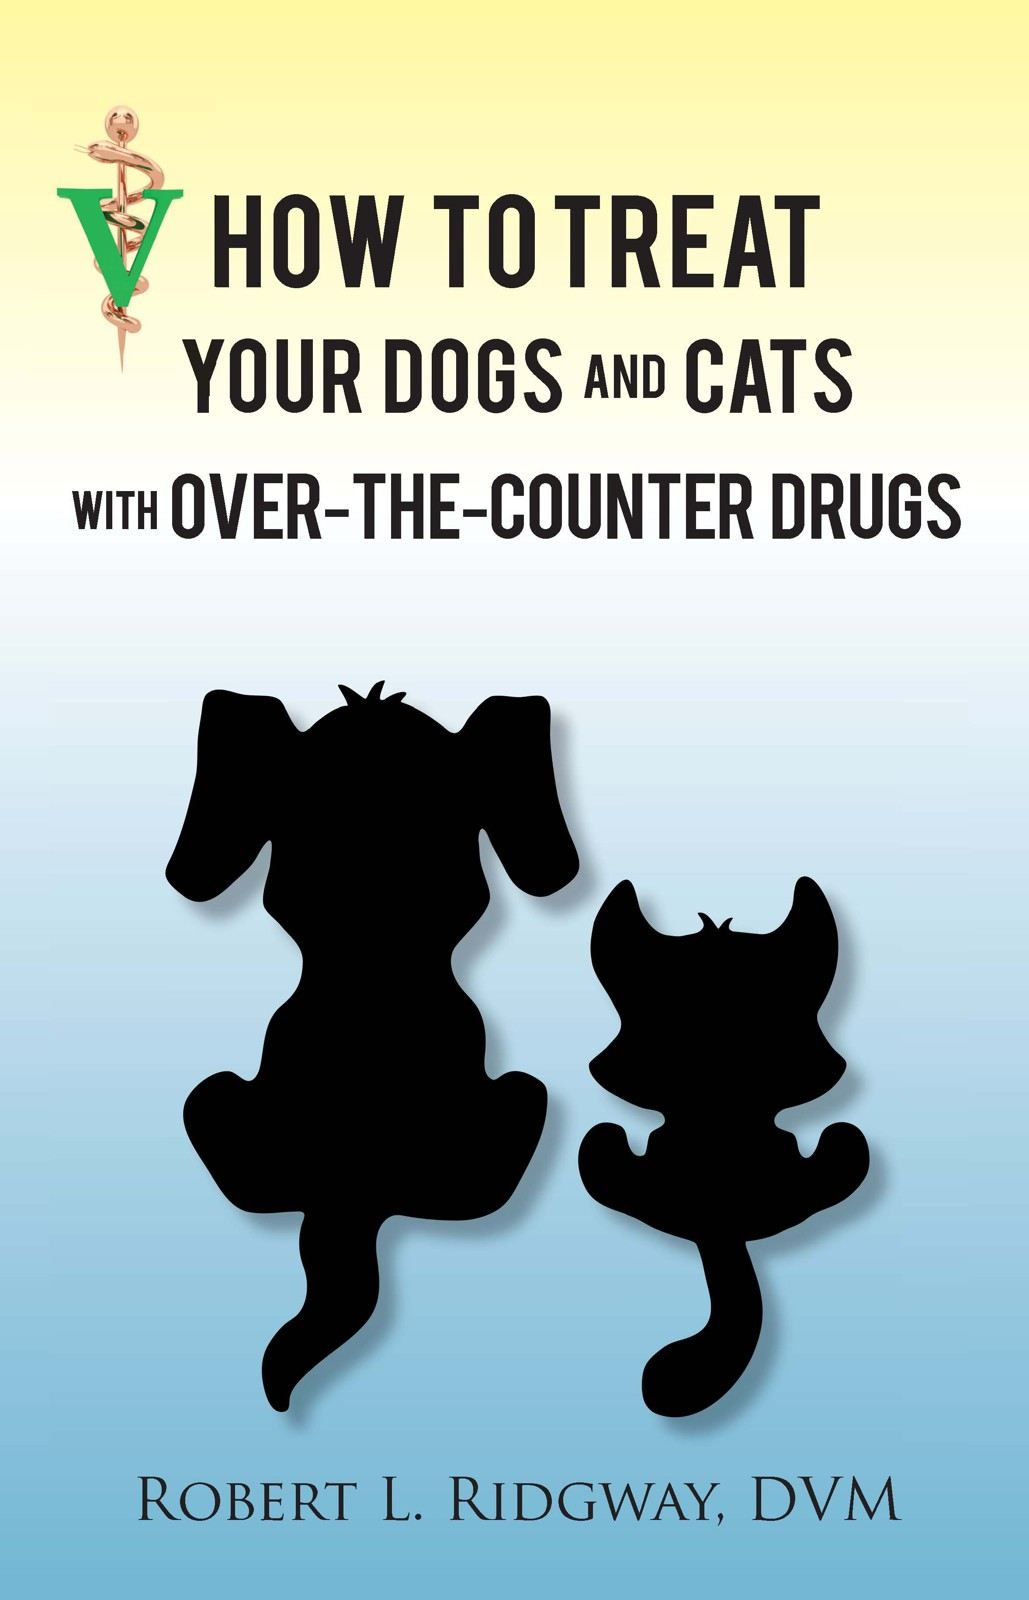 How to Treat Your Dogs and Cats with Over-the-Counter Drugs By: Robert L. Ridgway, DVM